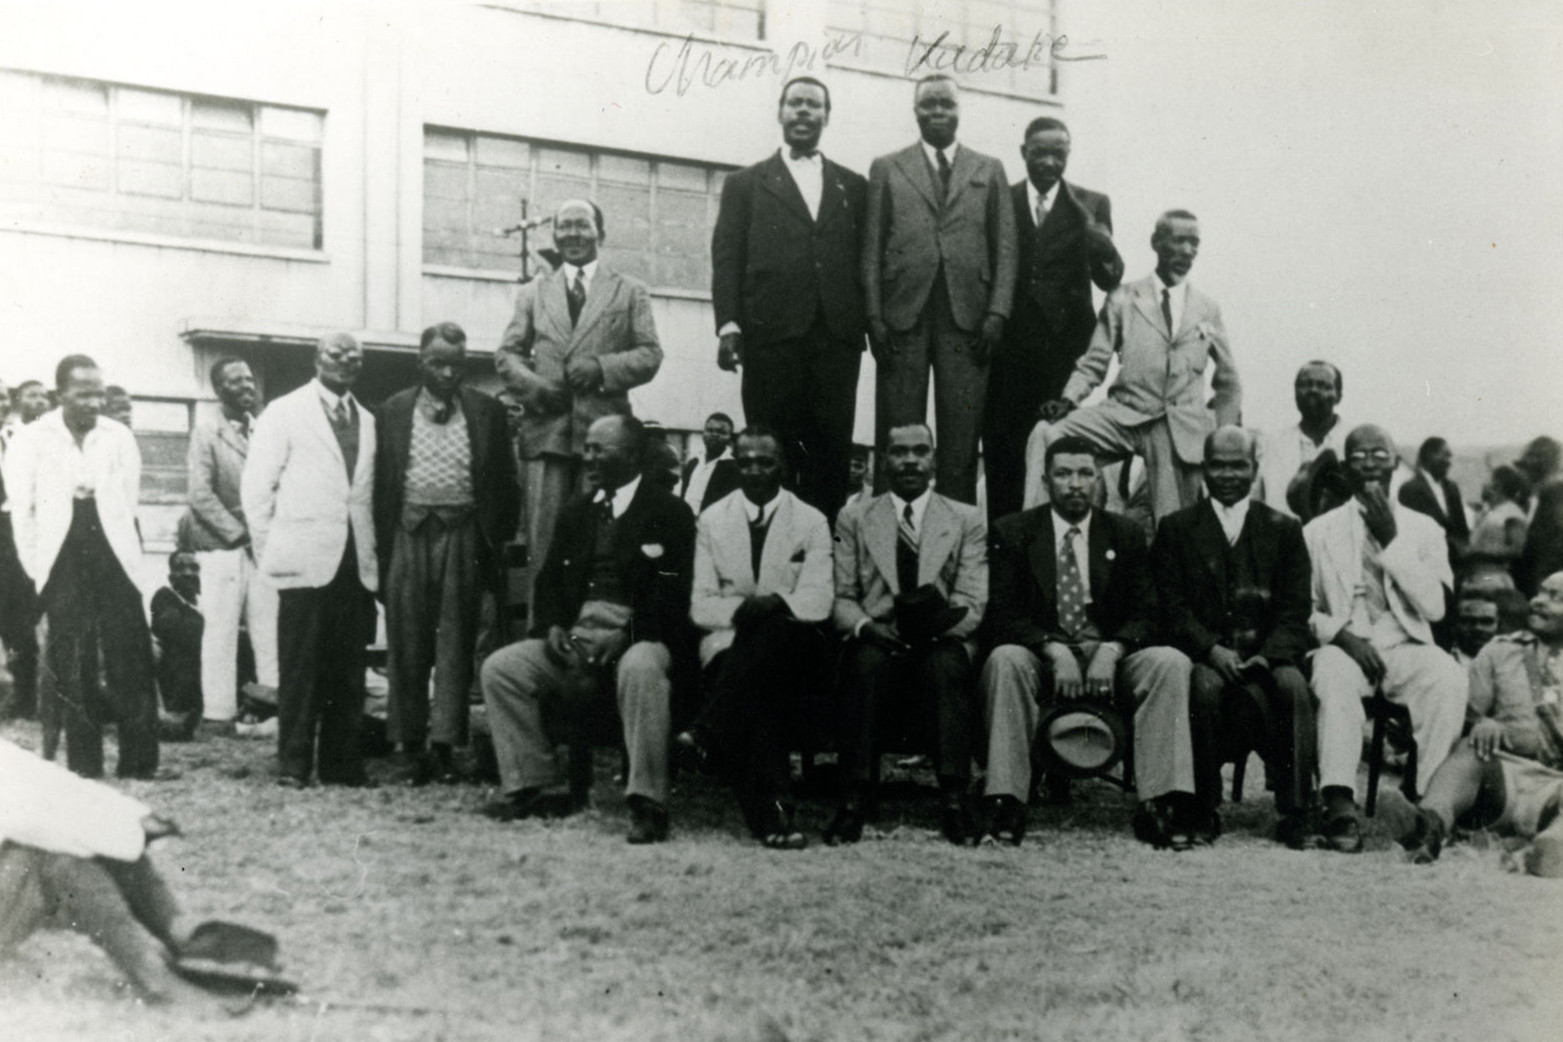 (L-R) Allison Champion and Clements Kadalie (standing, with handwritten names above), along with other ICU members, in this undated photograph from the 1920's. (Photograph courtesy of UKZN Campbell Collection)